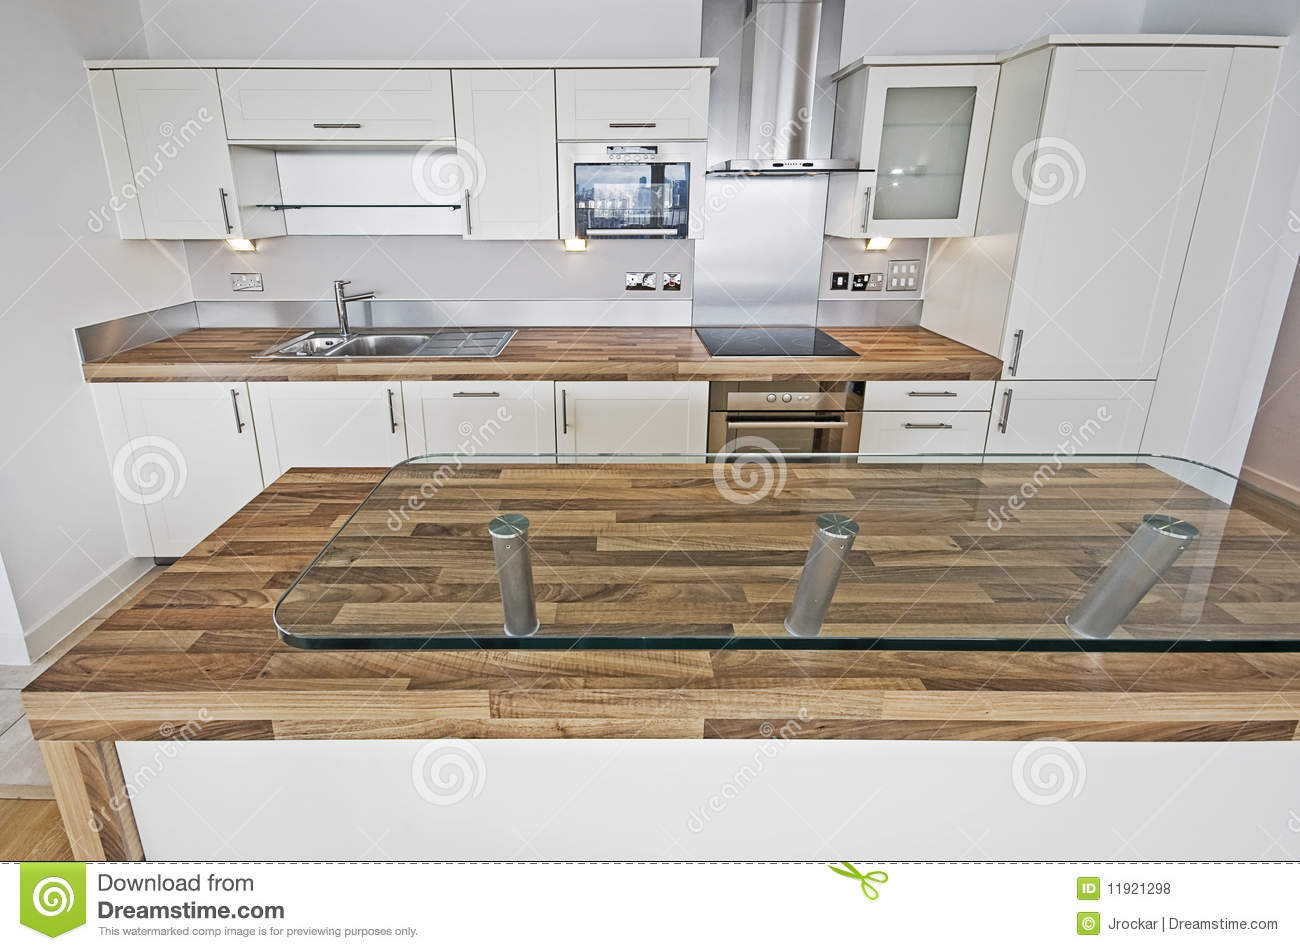 315 Contemporary Kitchen Breakfast Bar Photos Free Royalty Free Stock Photos From Dreamstime